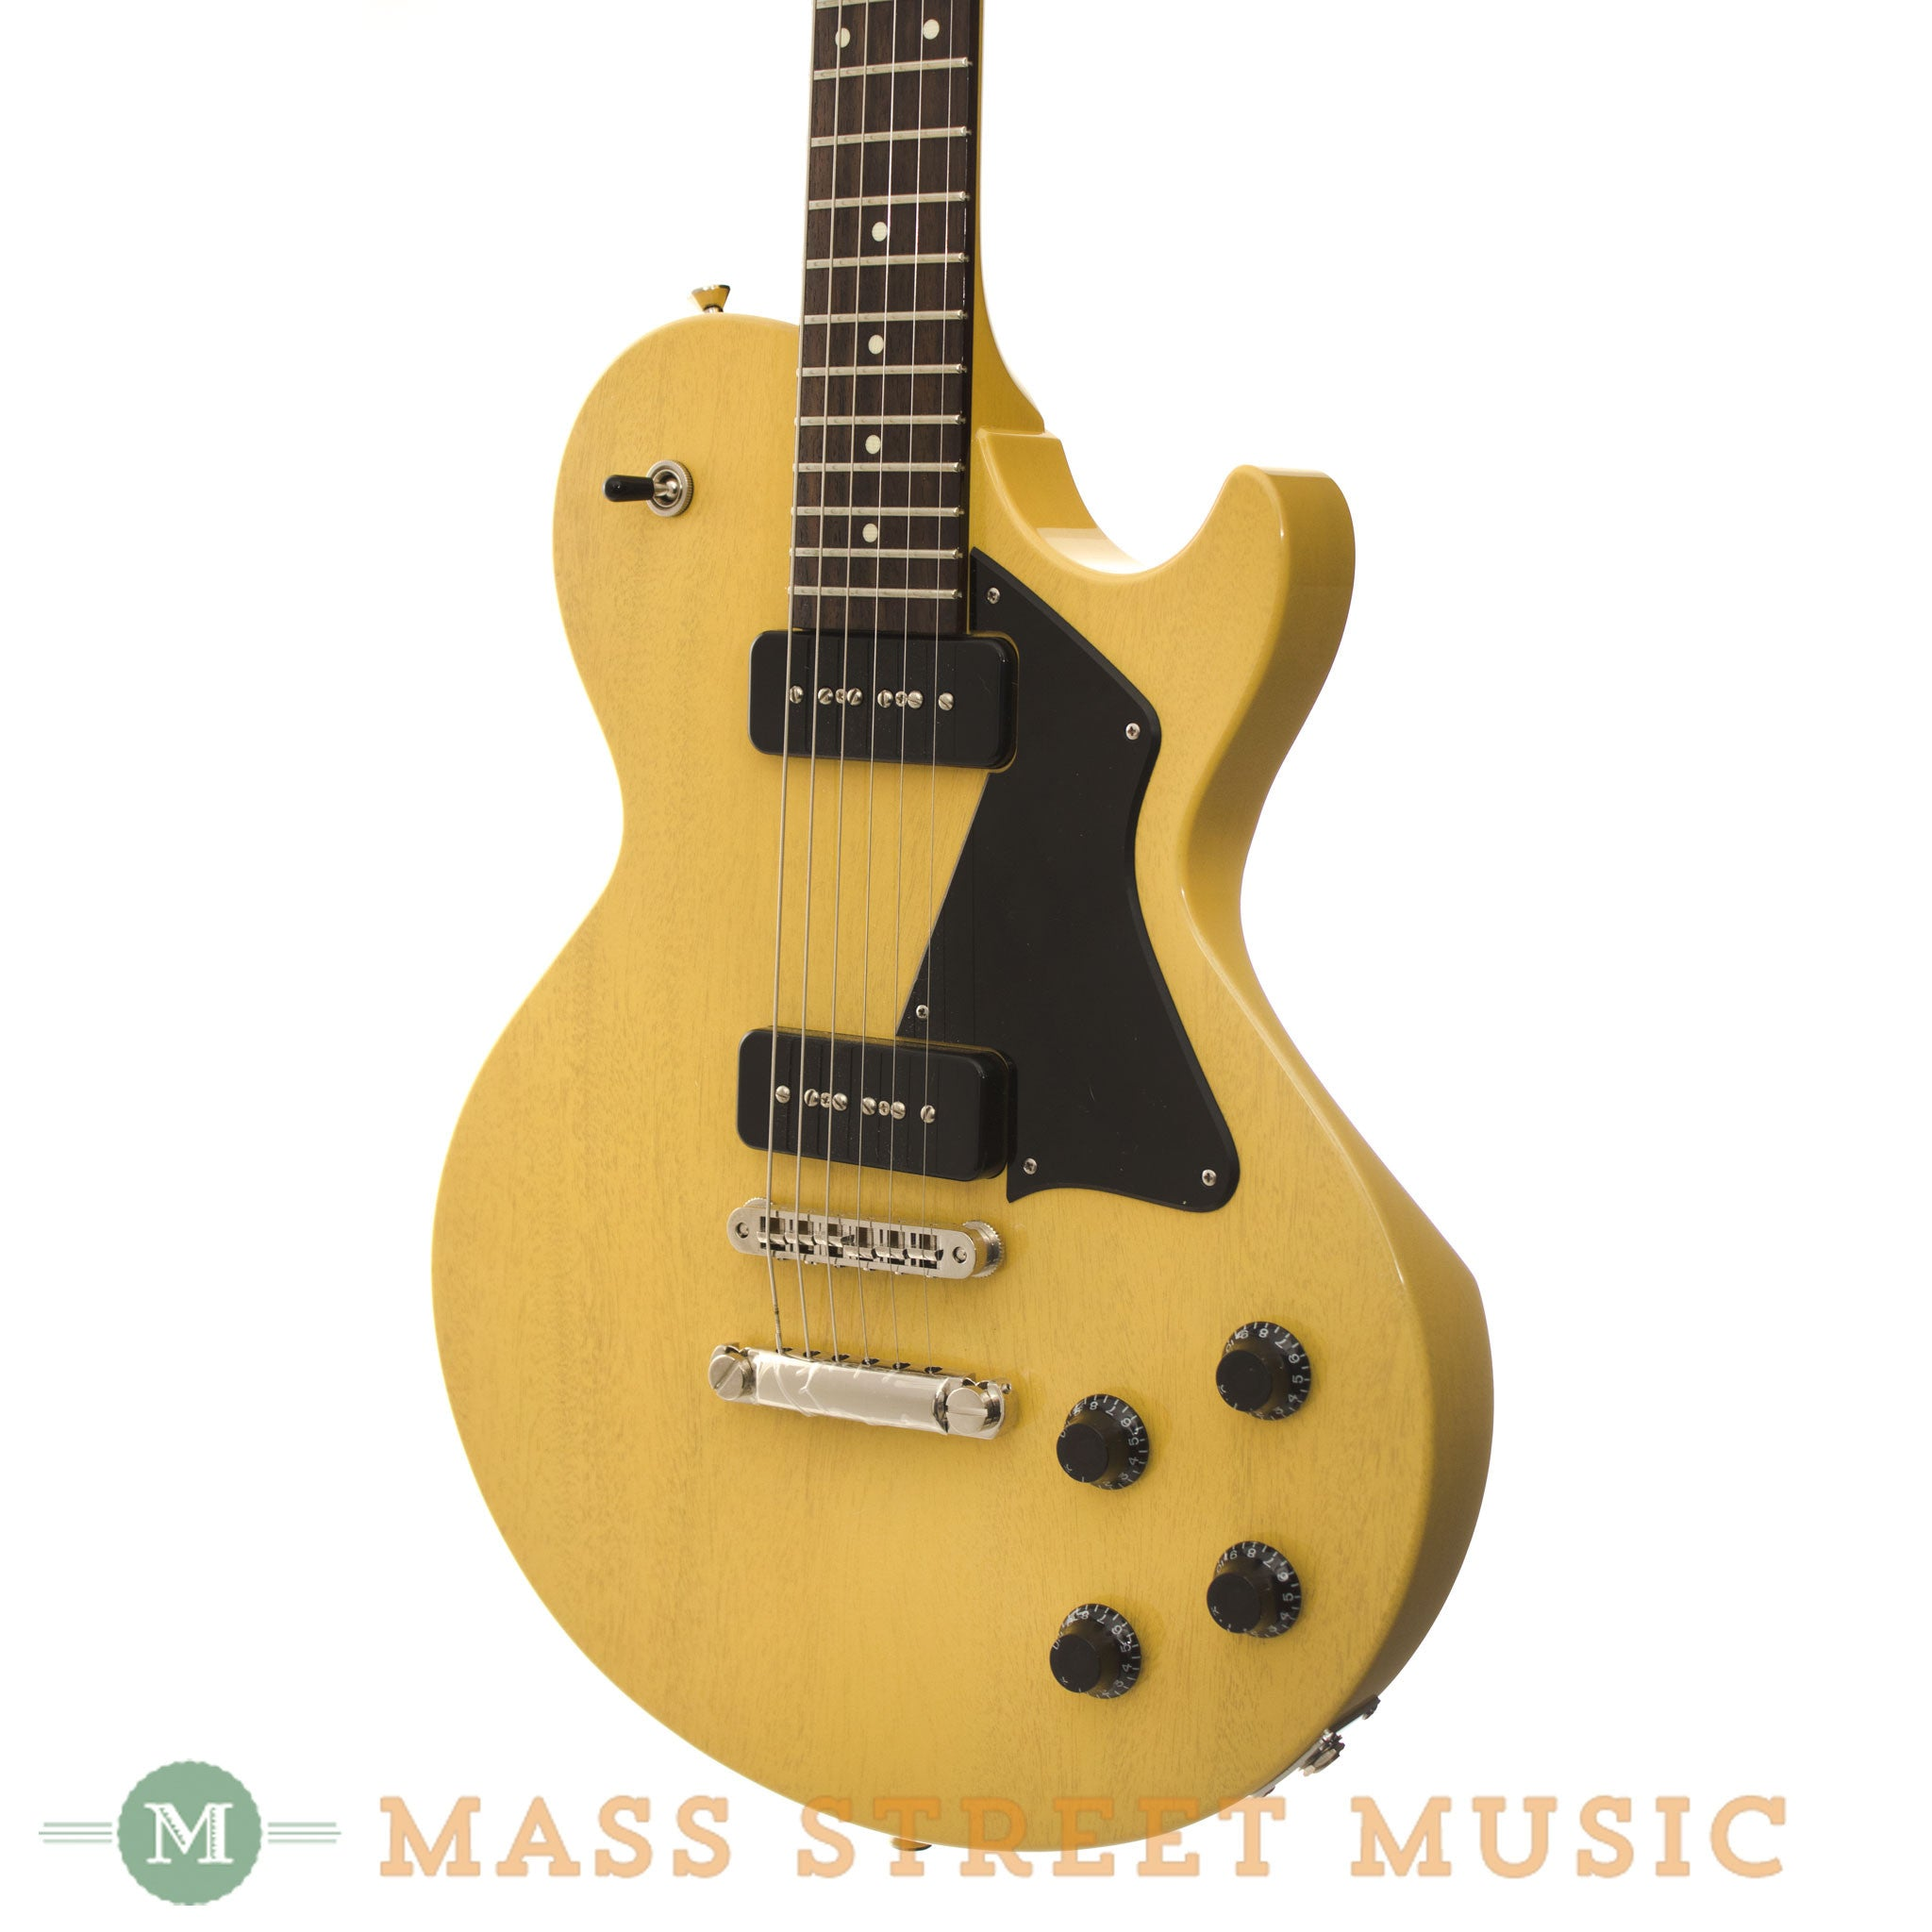 Collings Used 290 Tv Yellow With Original Hard Case Mass Street